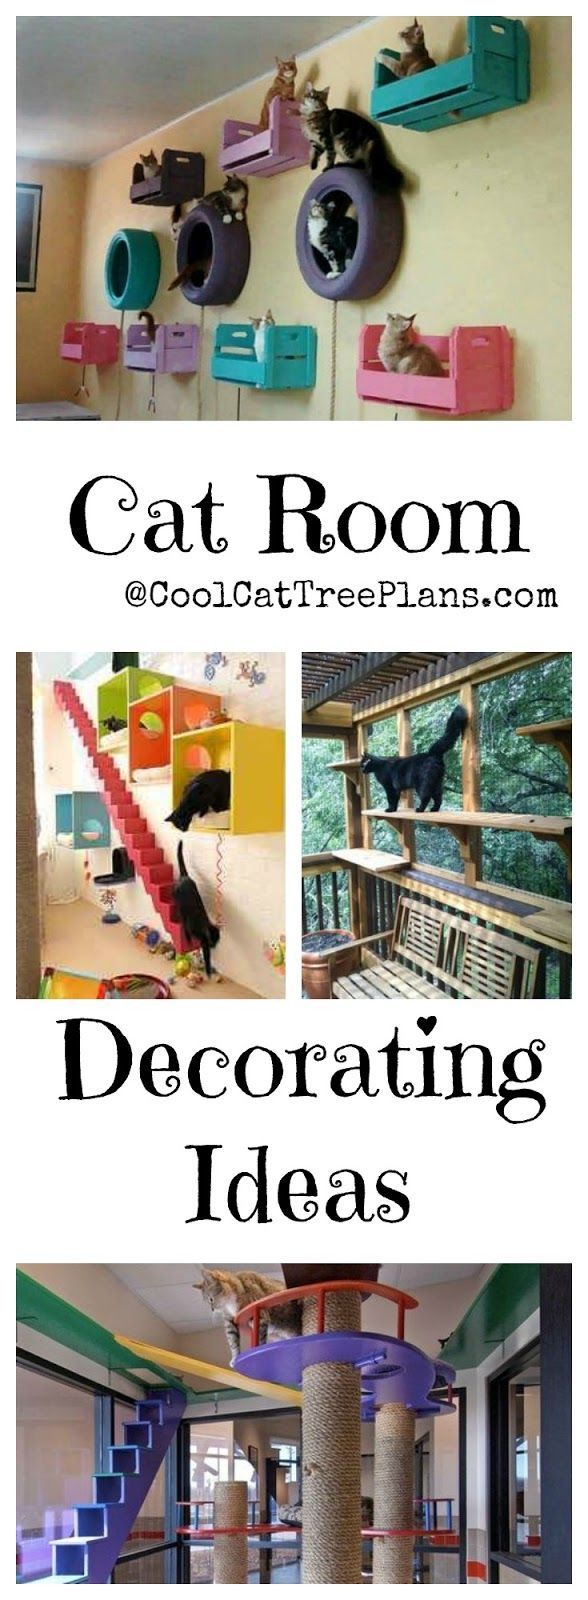 Cat Room Ideas. DIY cat decor for small spaces, apartments and homes of all size…